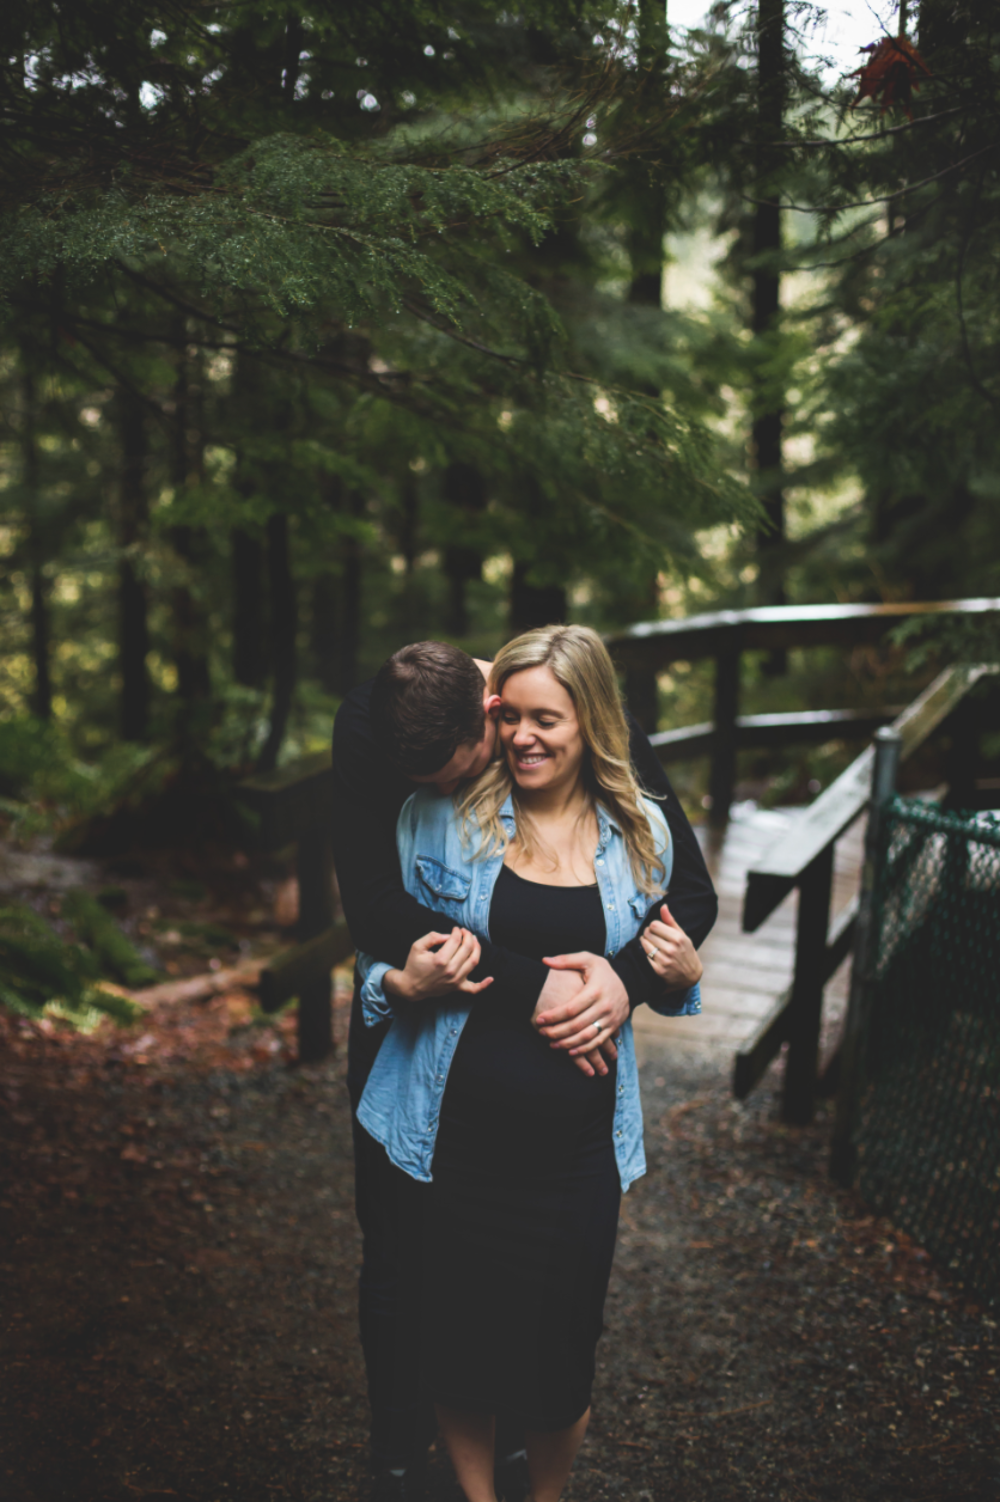 Maternity-Session-North-Vancouver-Lynn-Canyon-BC-Hamilton-Burlington-Oakville-Niagara-Toronto-Wedding-Portrait-Photographer-Expecting-Photography-Waterfront-HamOnt-Golden-Hour-Moments-by-Lauren-Photo-Image-8.png